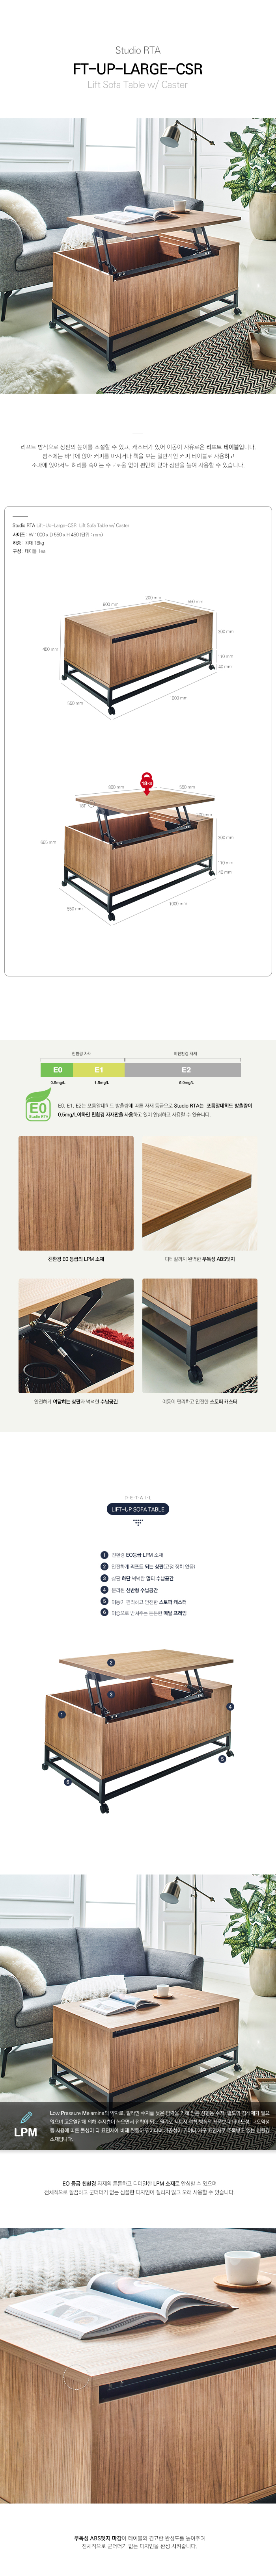 Lift-Up-Large-C-Lift-Coffee-Table_190122